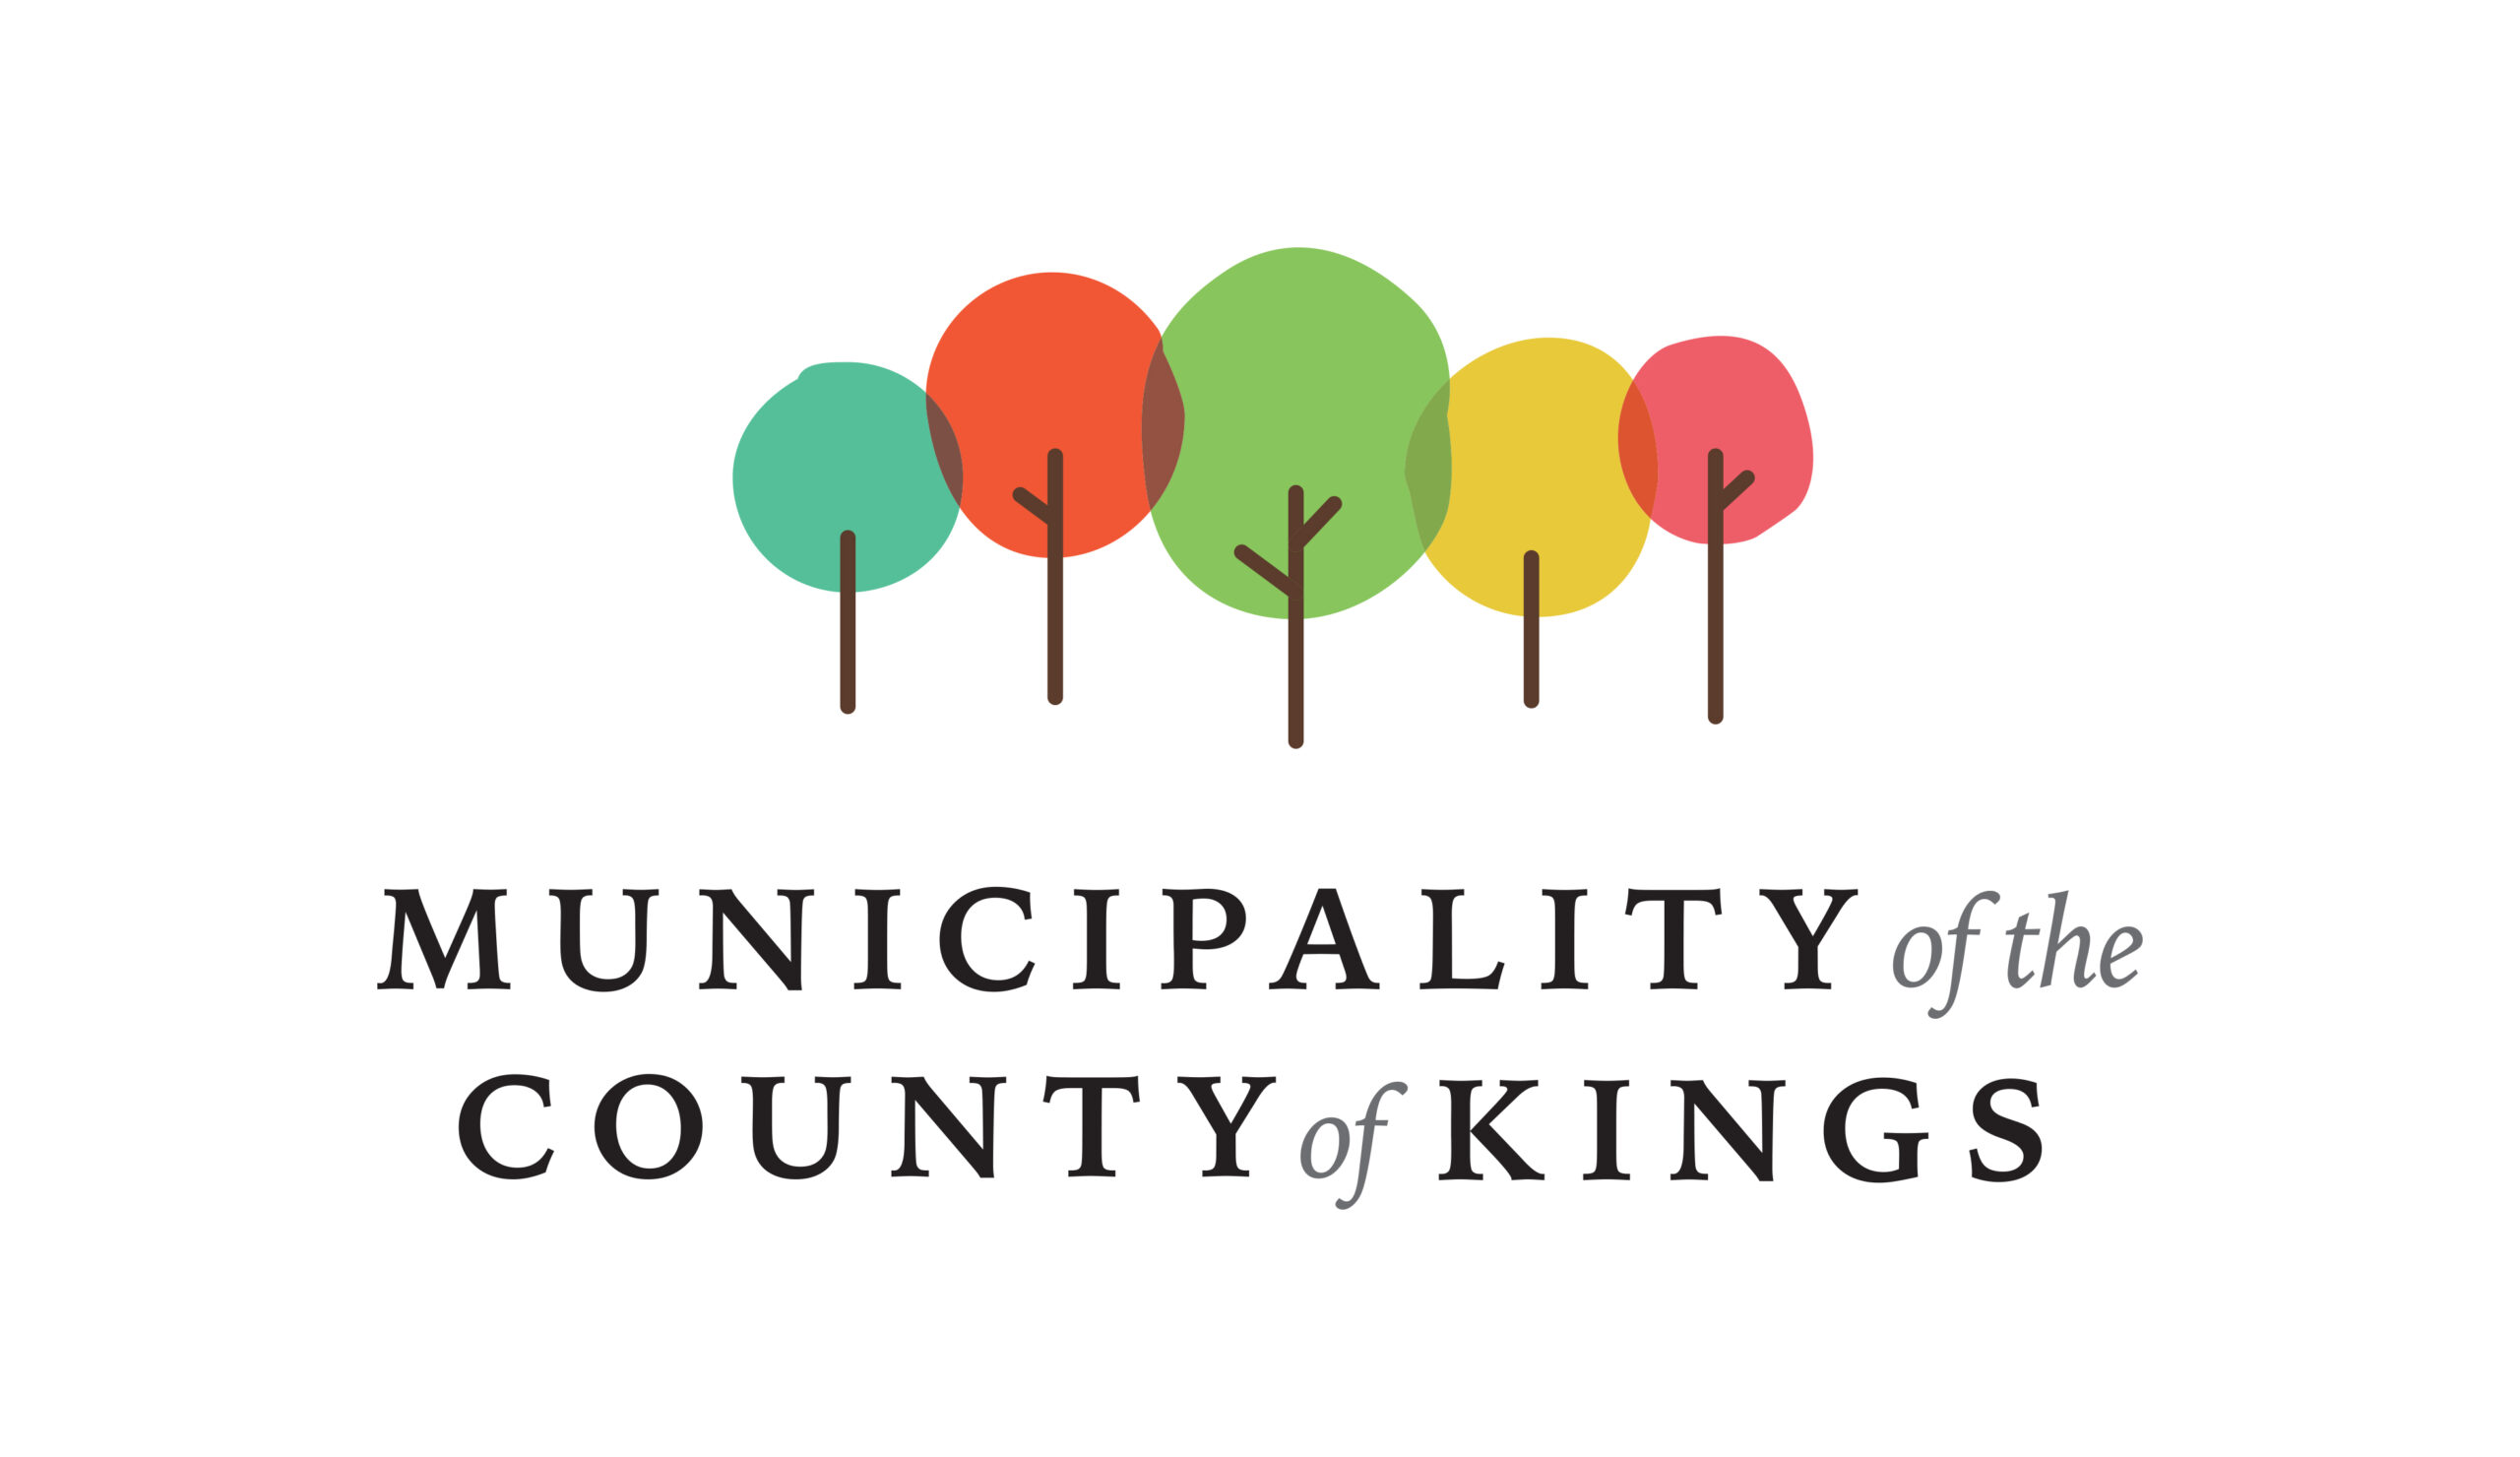 The Municipality of the County of Kings